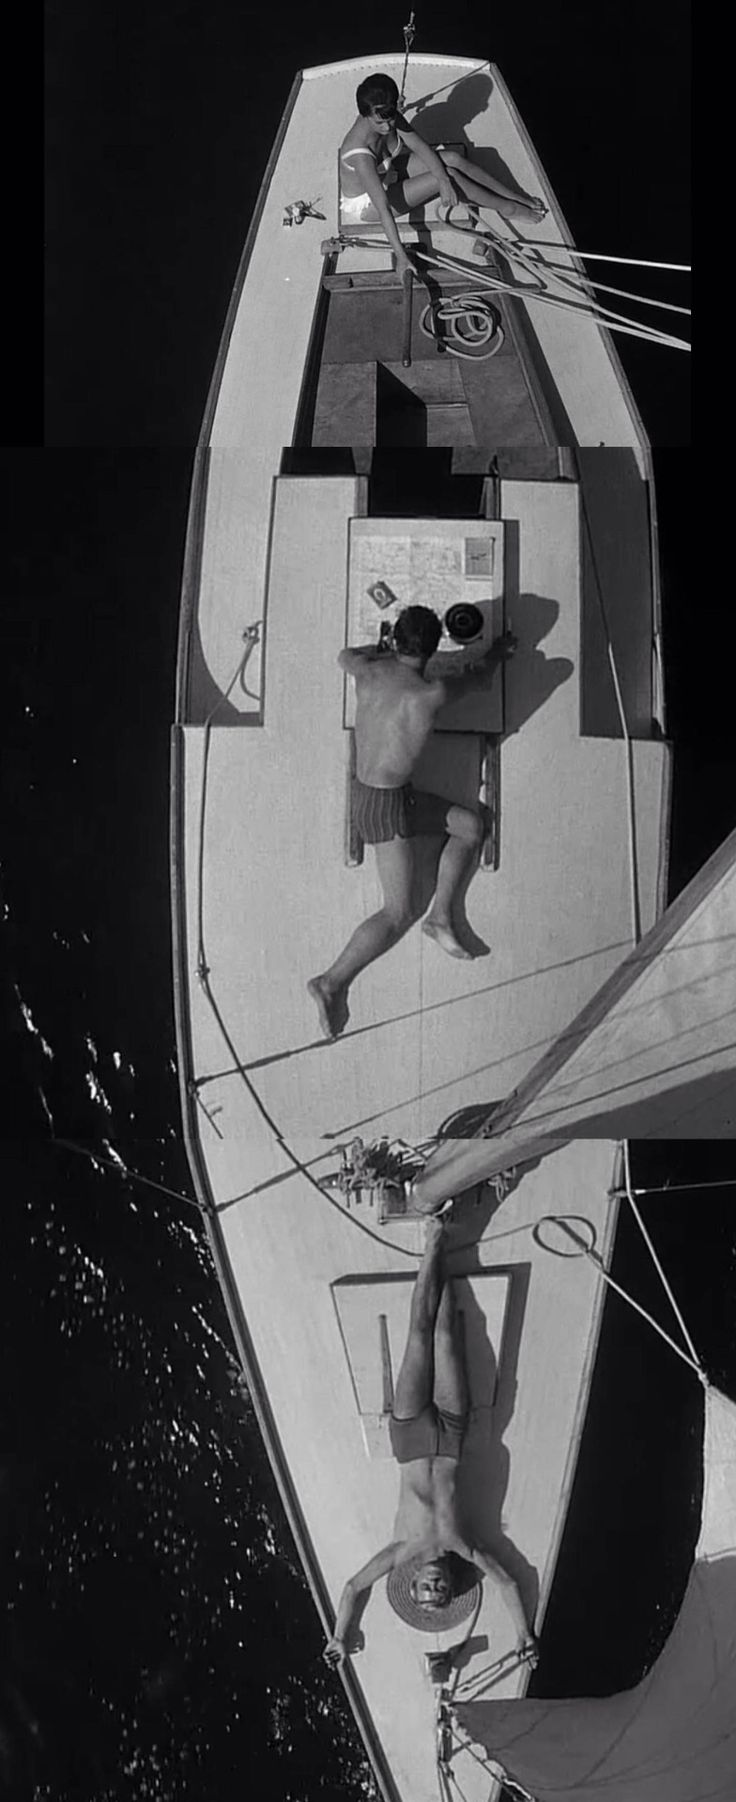 Roman Polanski: Knife in the water (1962) film still